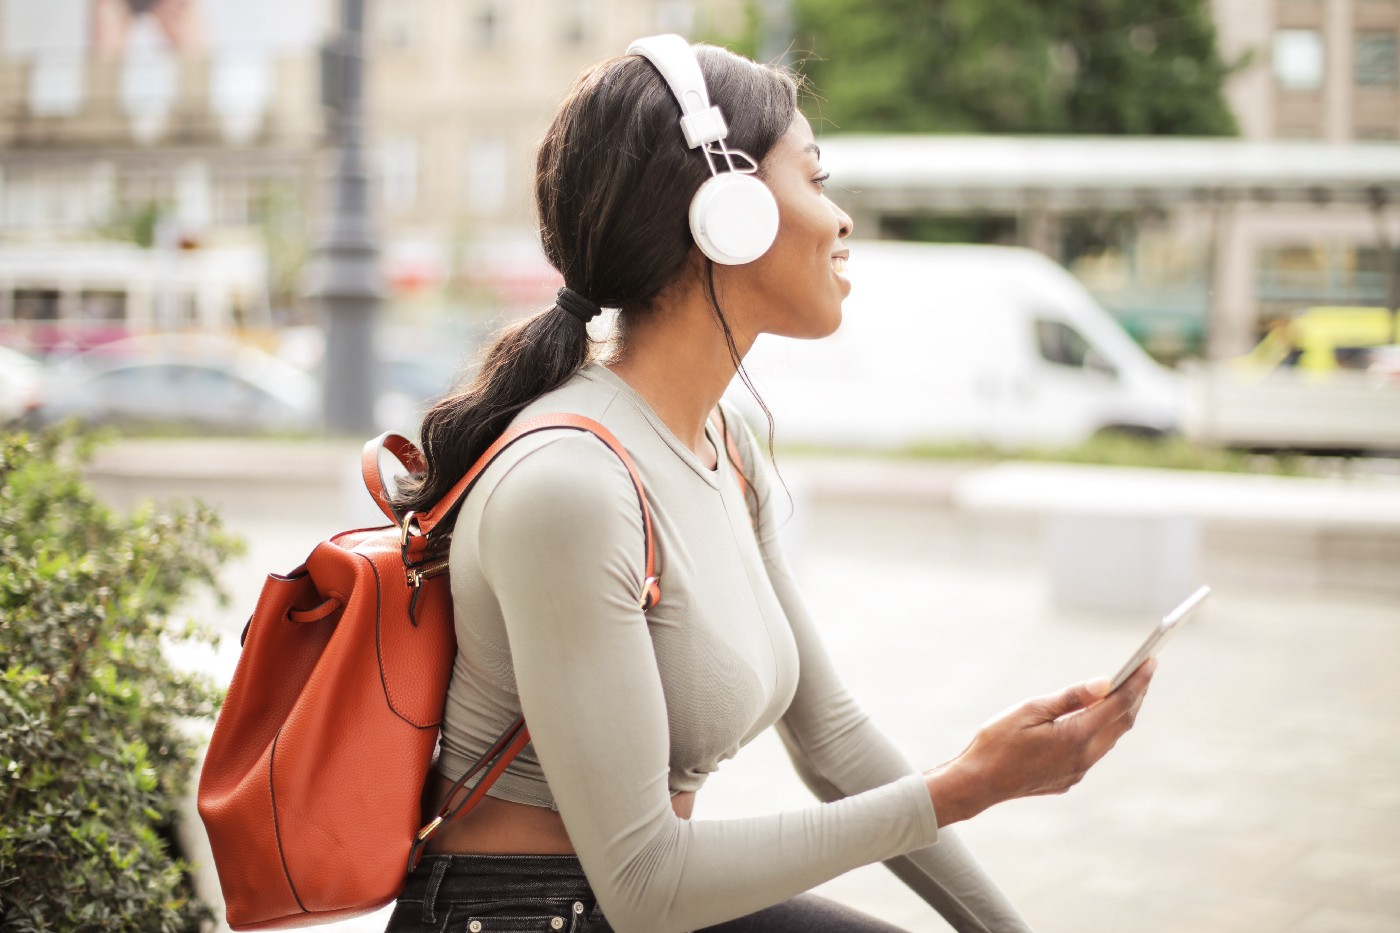 Woman with headphones on audio journaling with her phone while sitting down outside